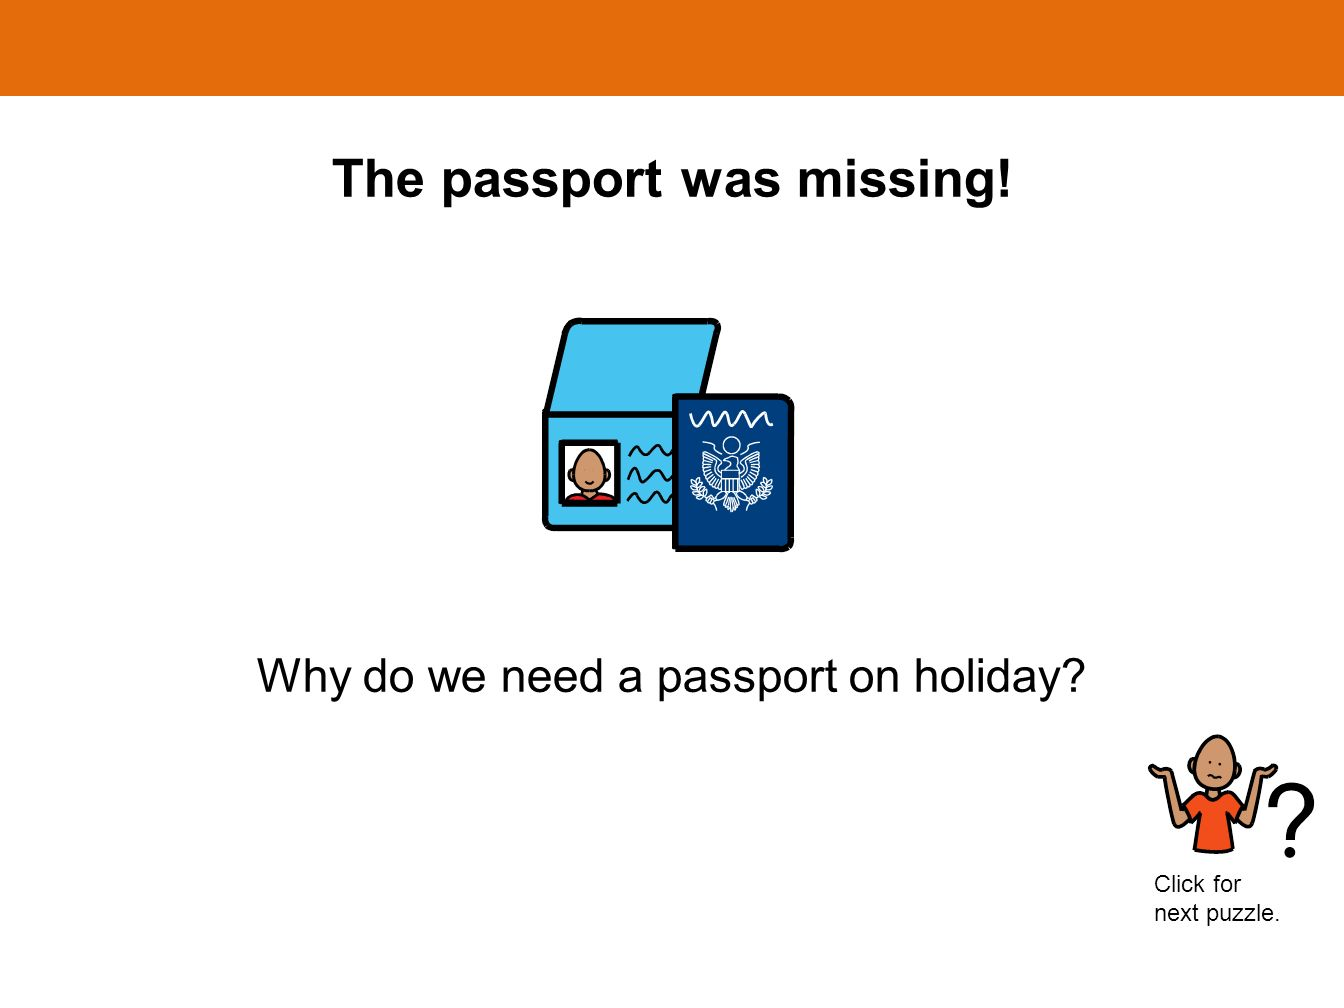 The passport was missing! Why do we need a passport on holiday? Click for next puzzle.